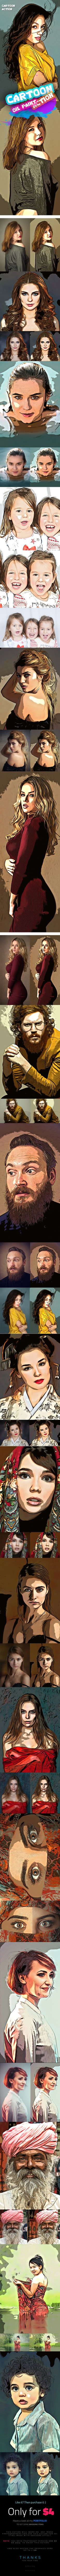 Cartoon Oil Art - Photo Effects Actions